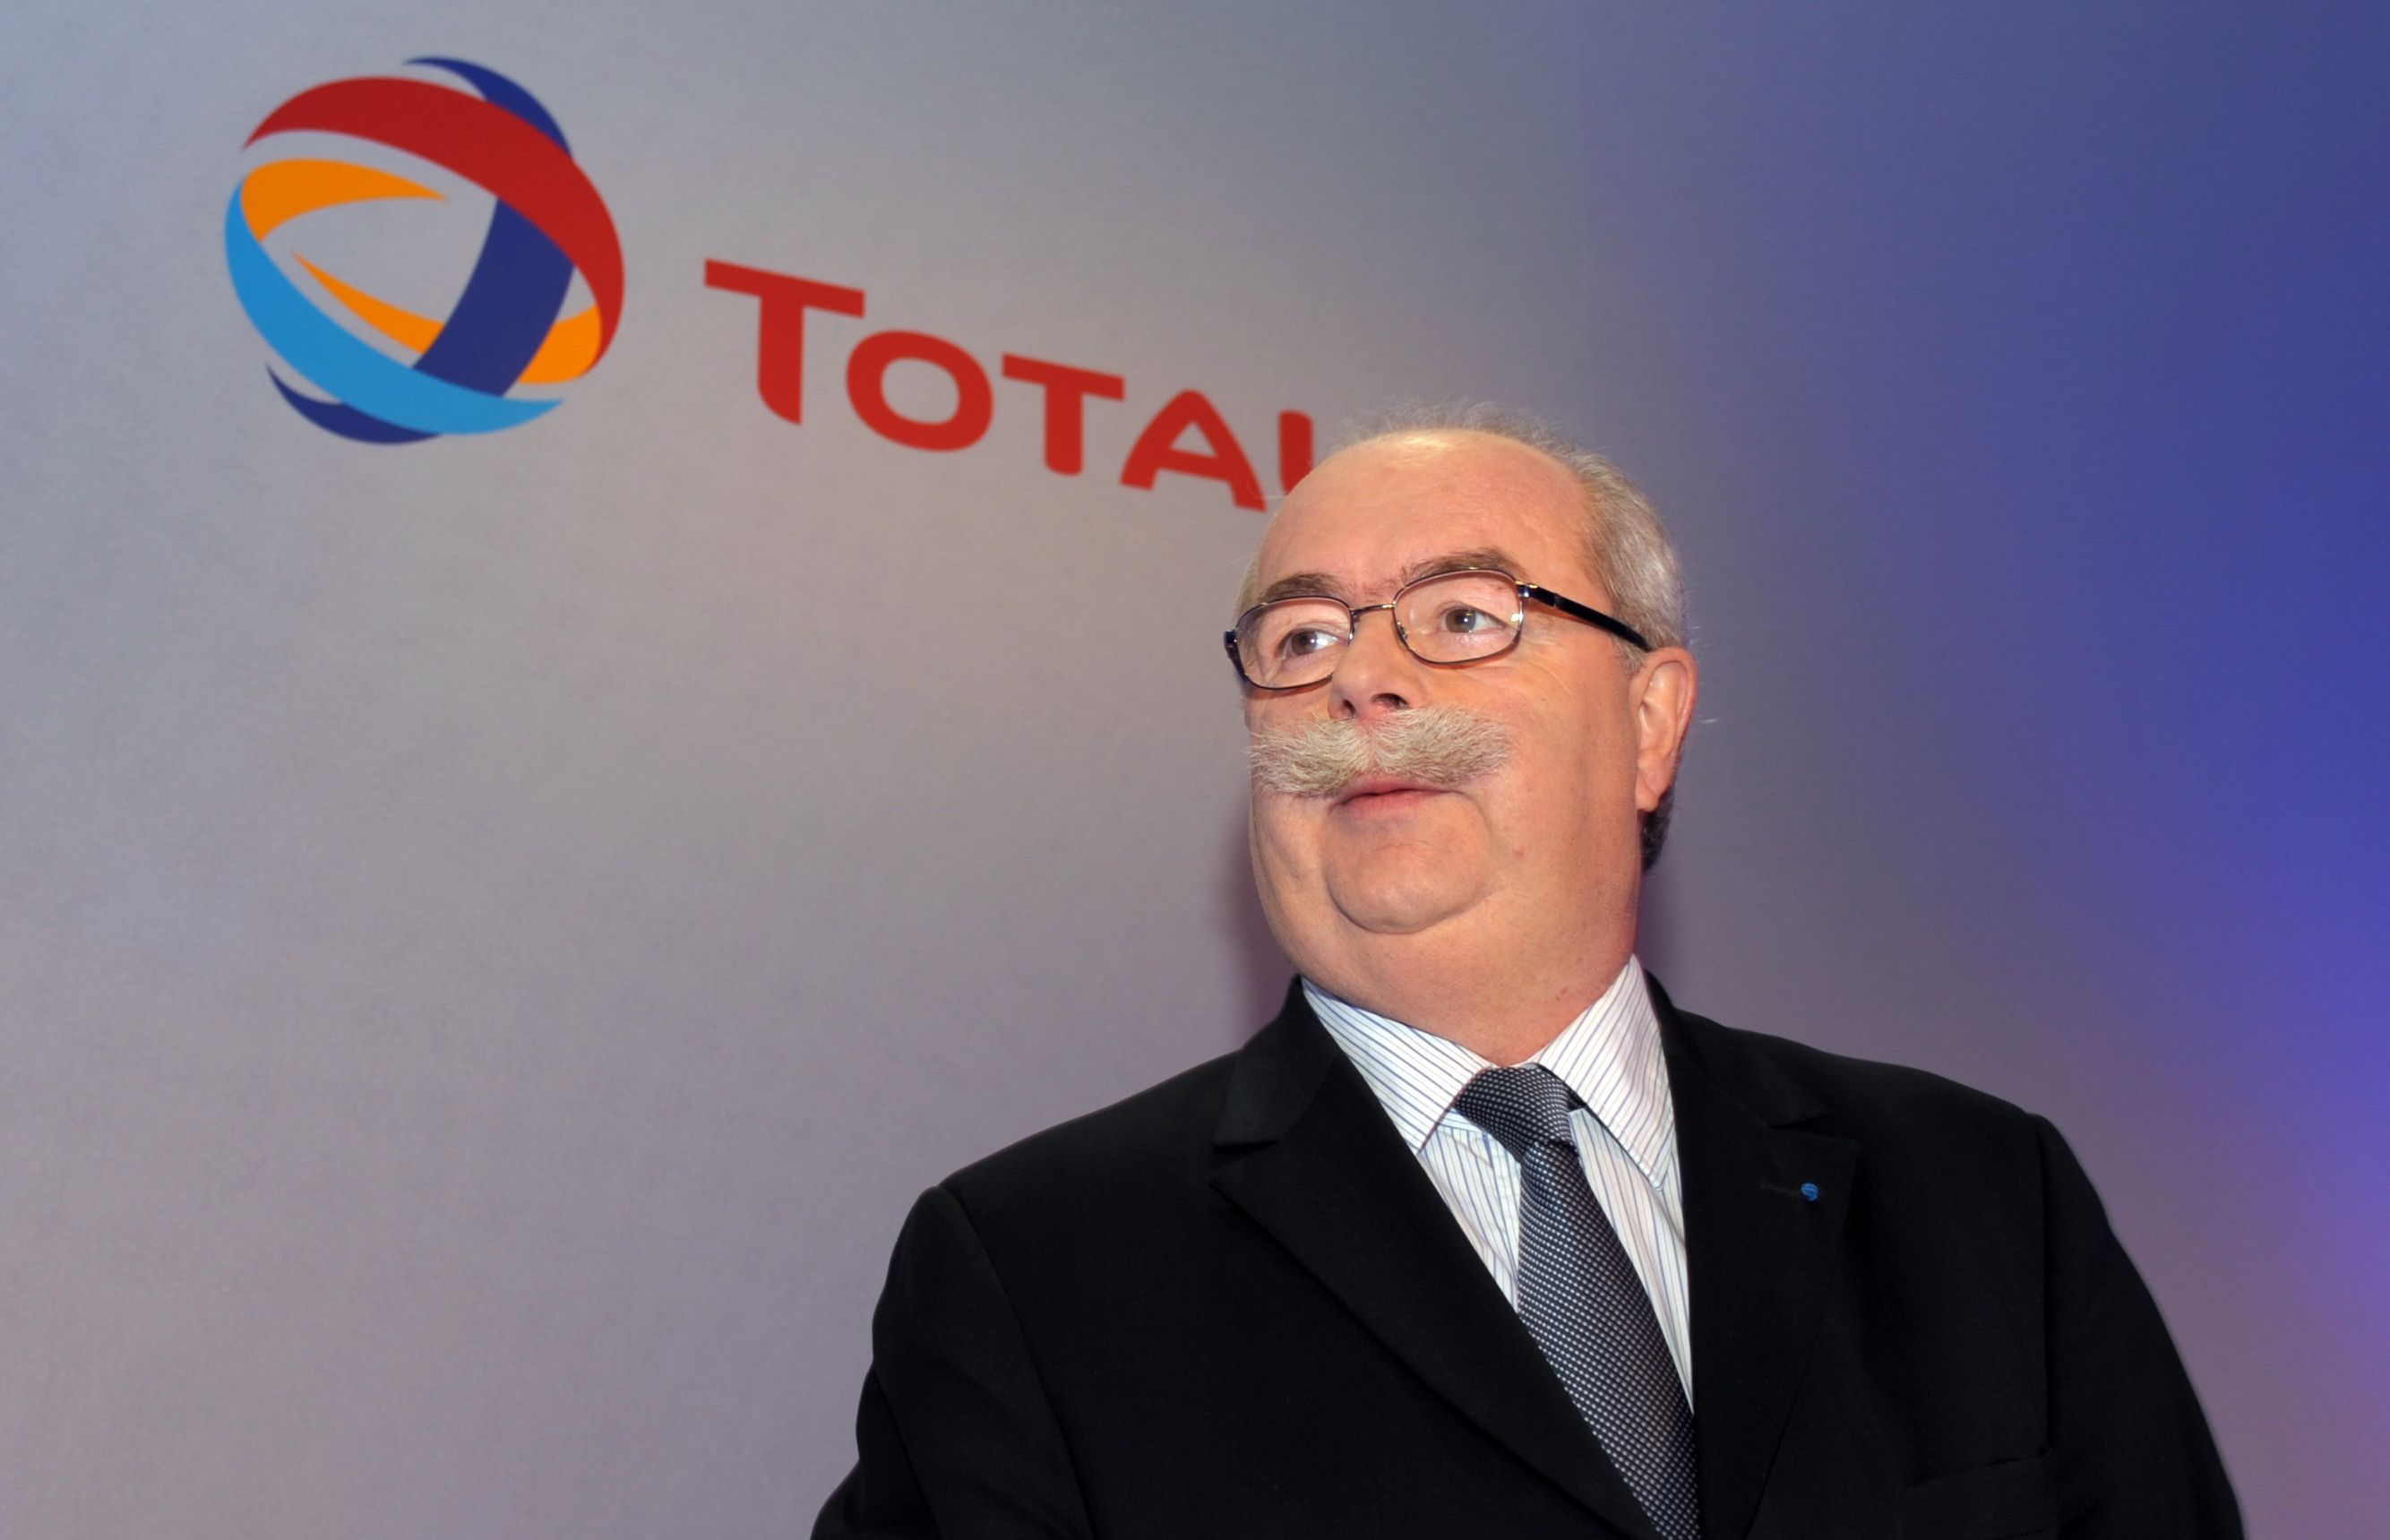 French oil giant Total CEO killed in plane accident